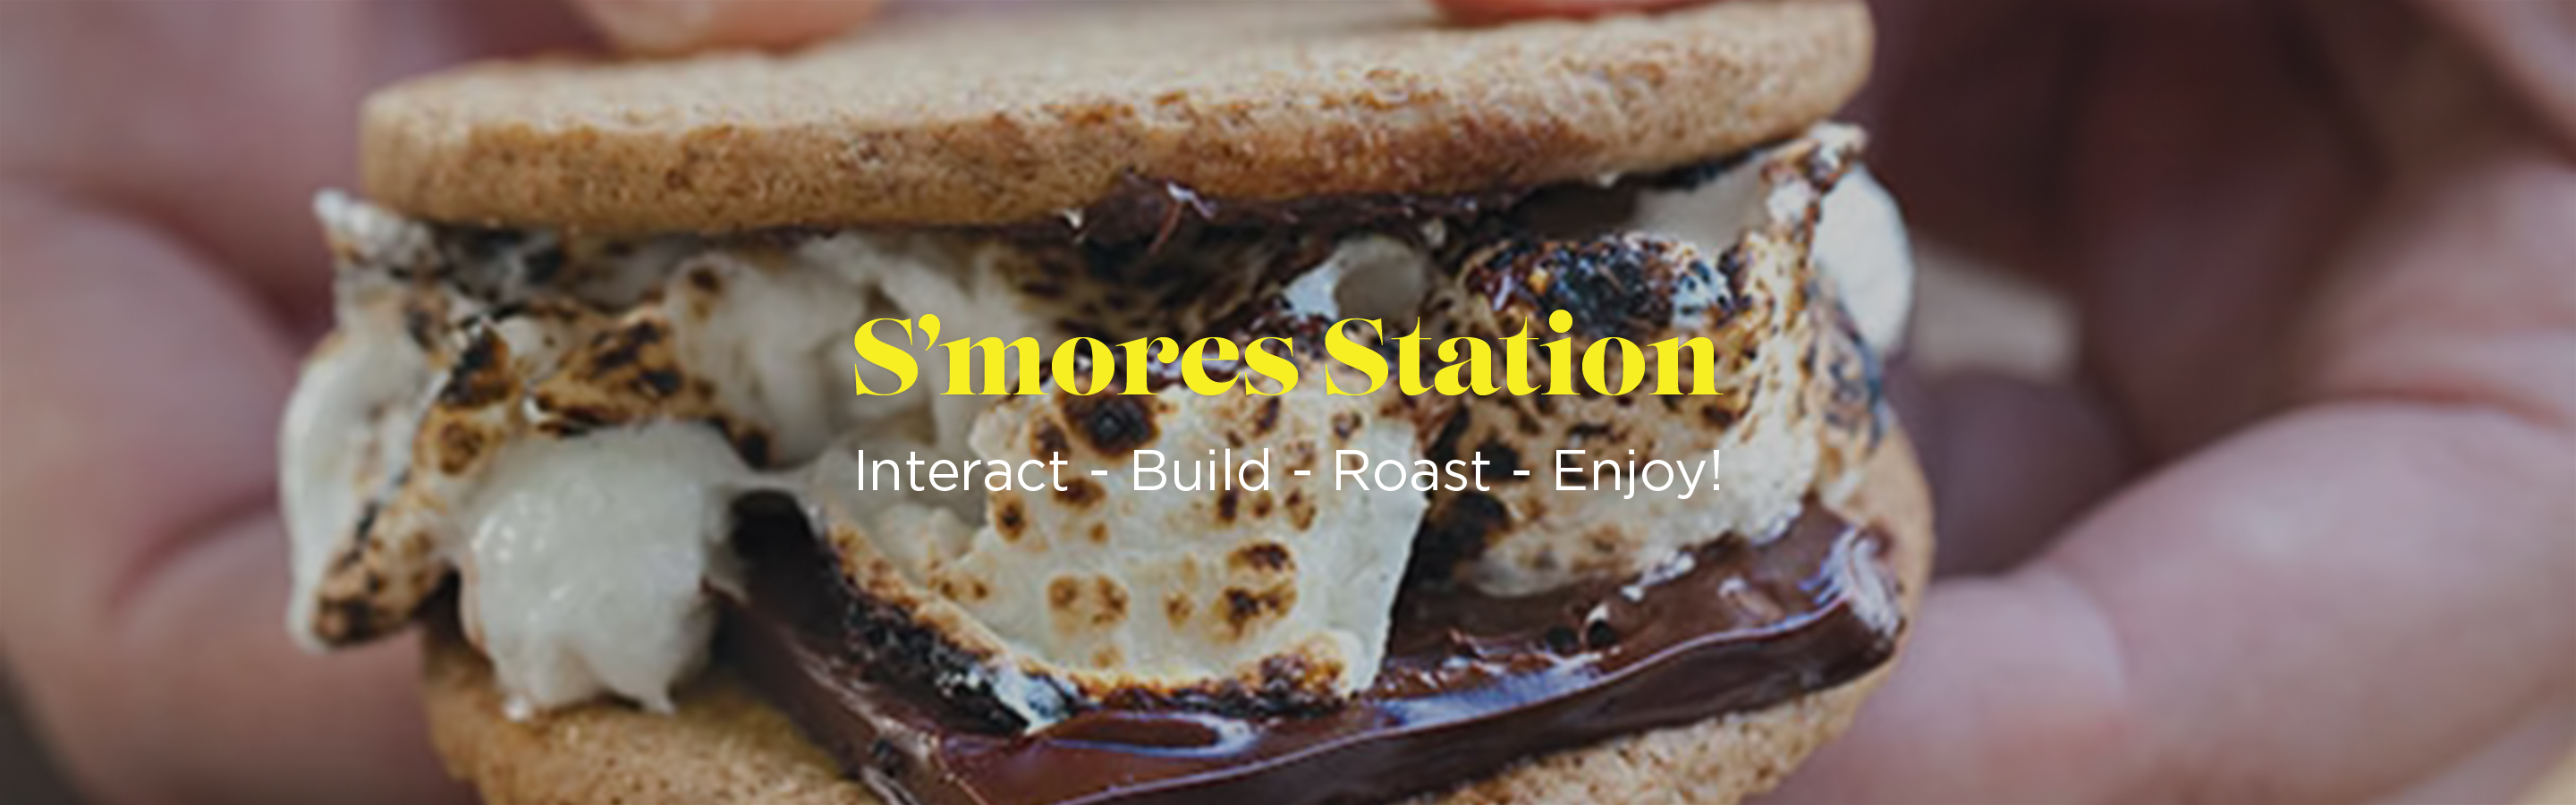 smores-page-banners.jpg